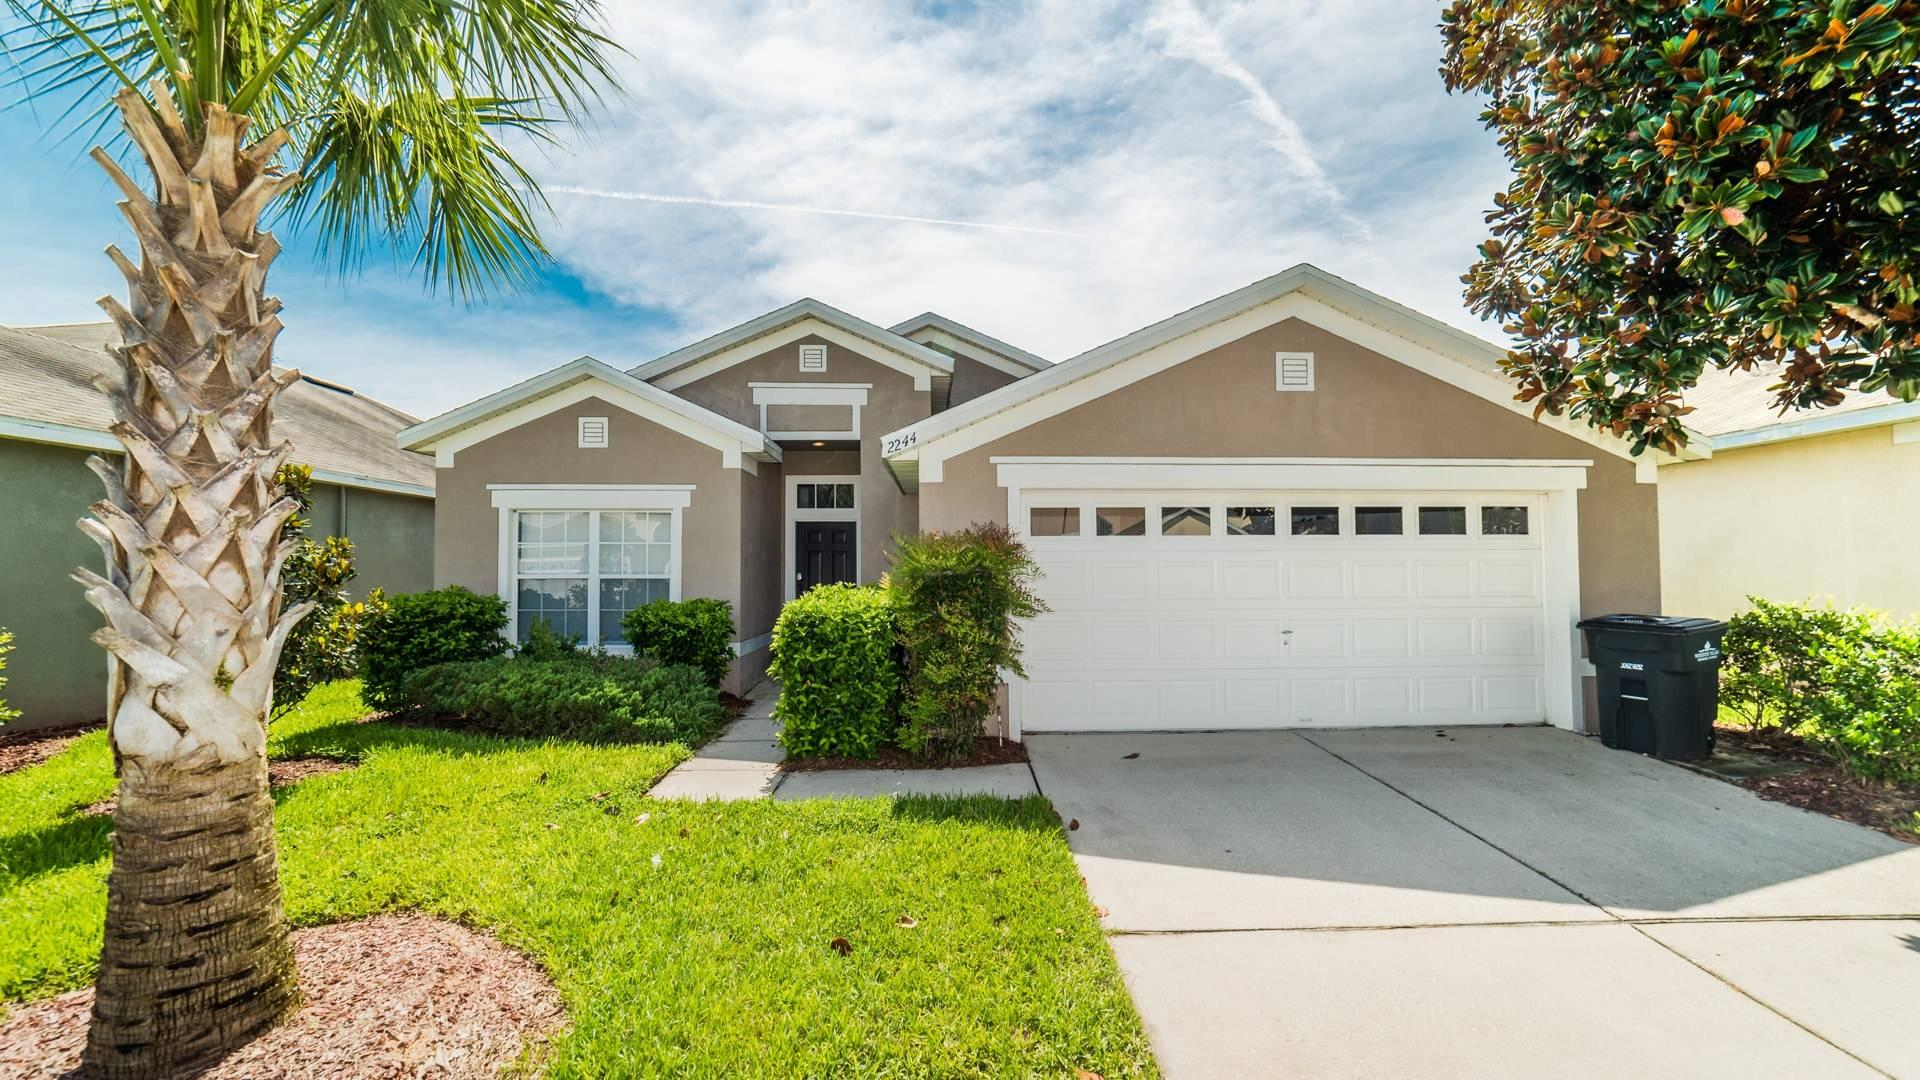 Property Image 1 - Perfect 4 Br Home for Family Vacations Near Disney